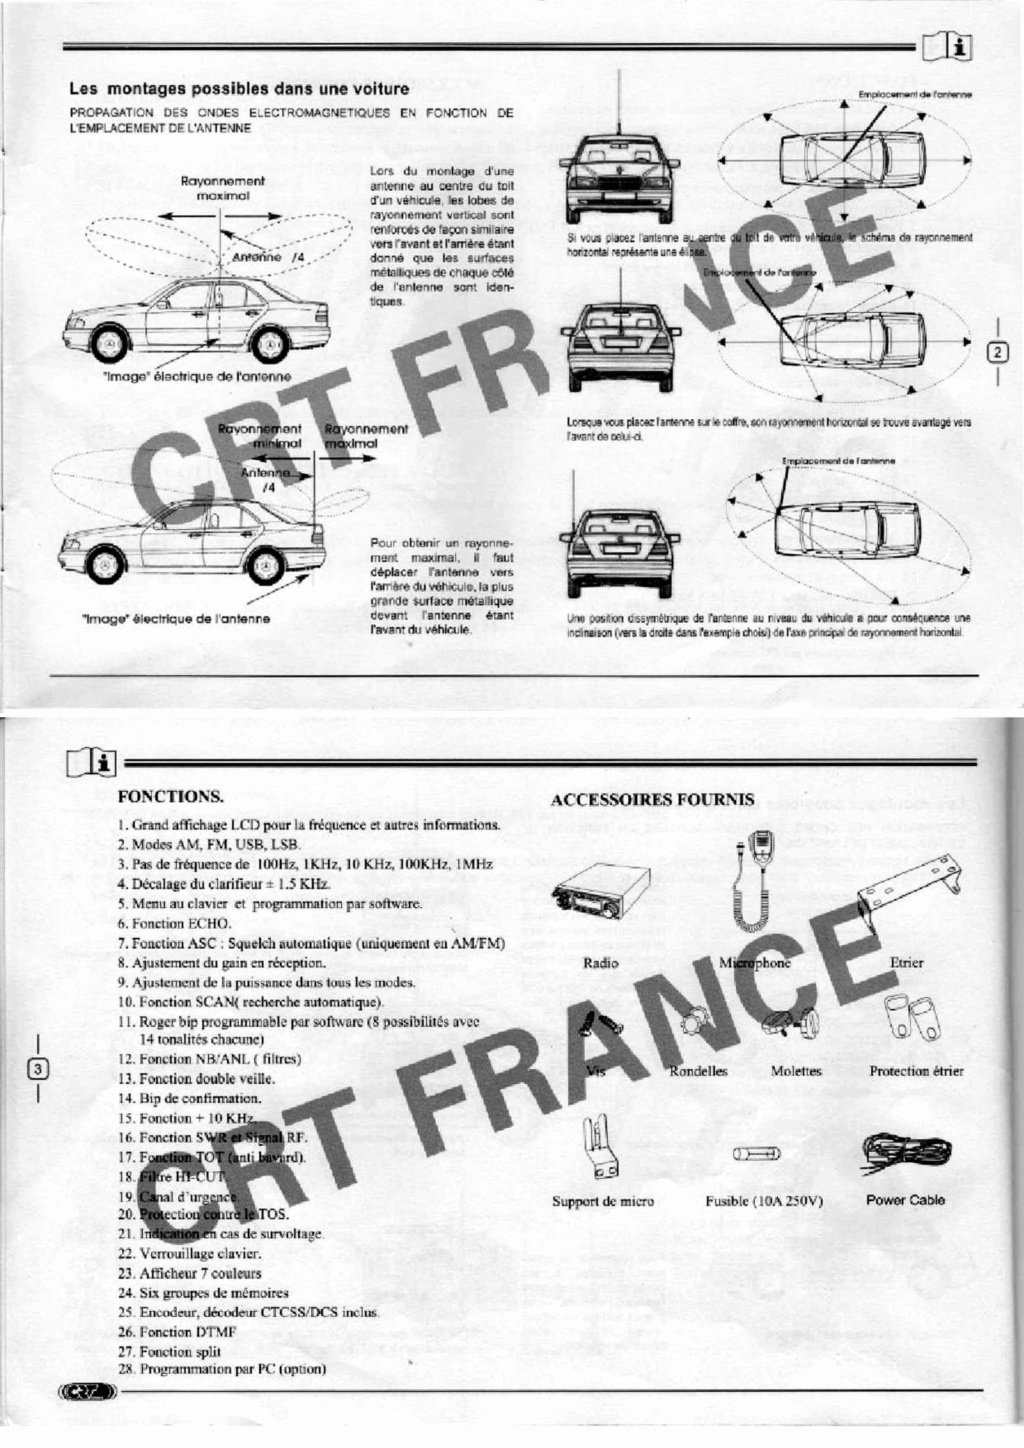 CRT SS 9900 v4 (Mobile) - Page 16 Feuill31